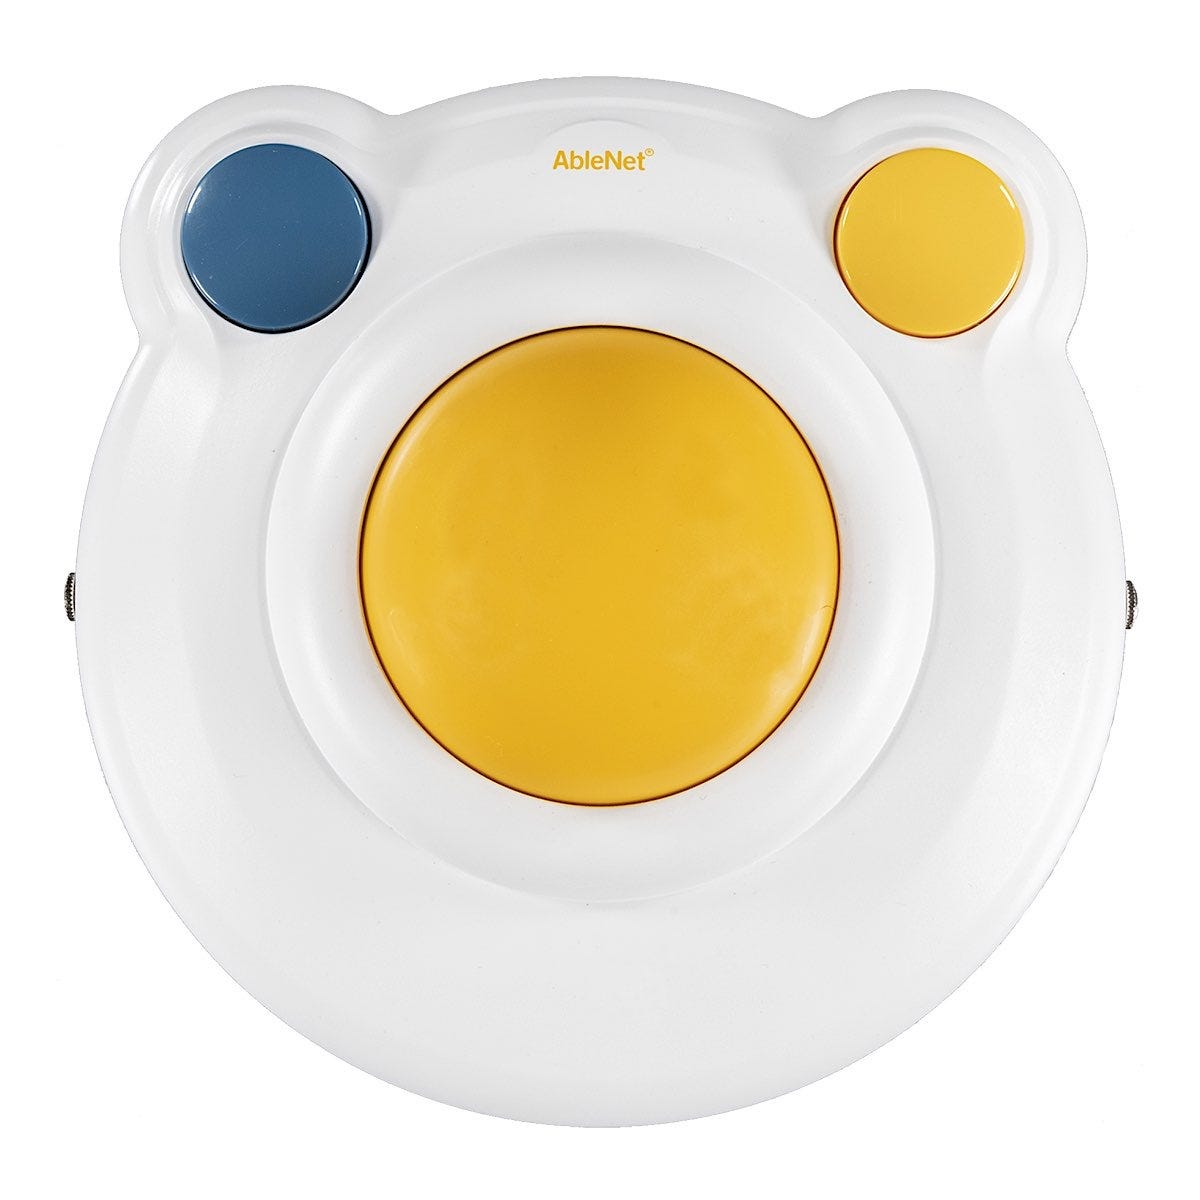 BIGtrack Wireless Trackball Mouse